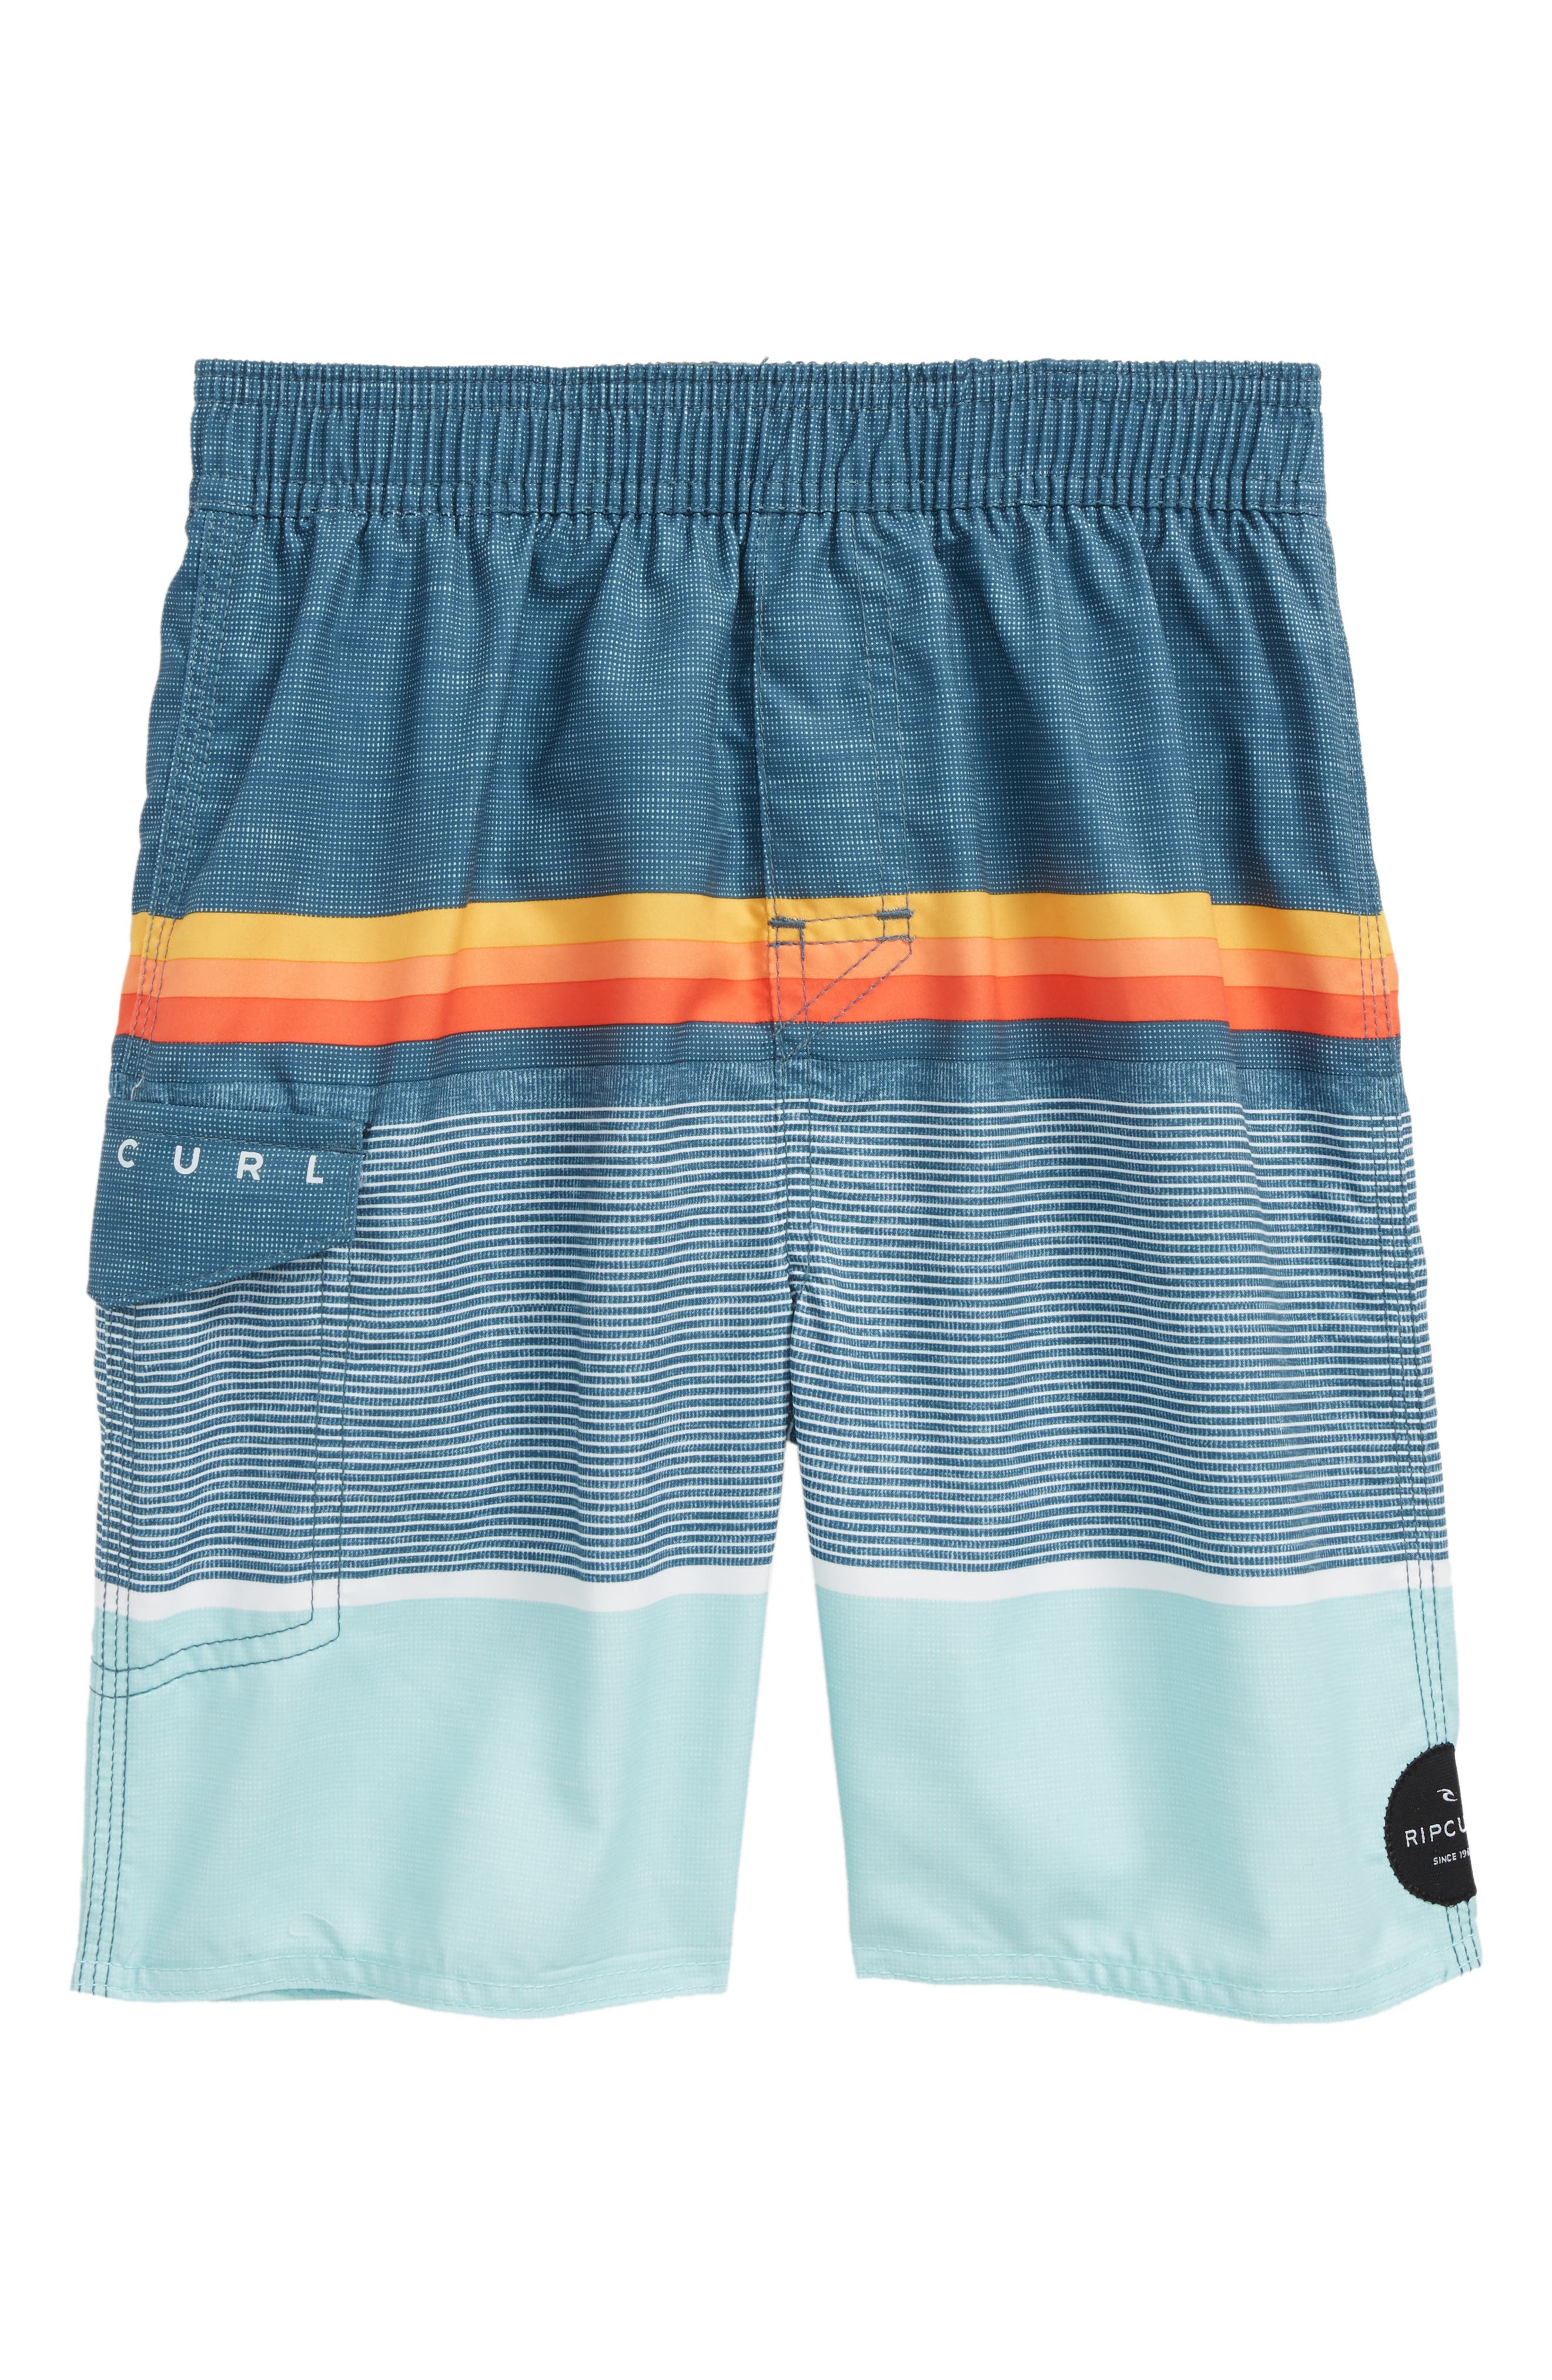 Rapture Layday Volley Shorts,                         Main,                         color, 400